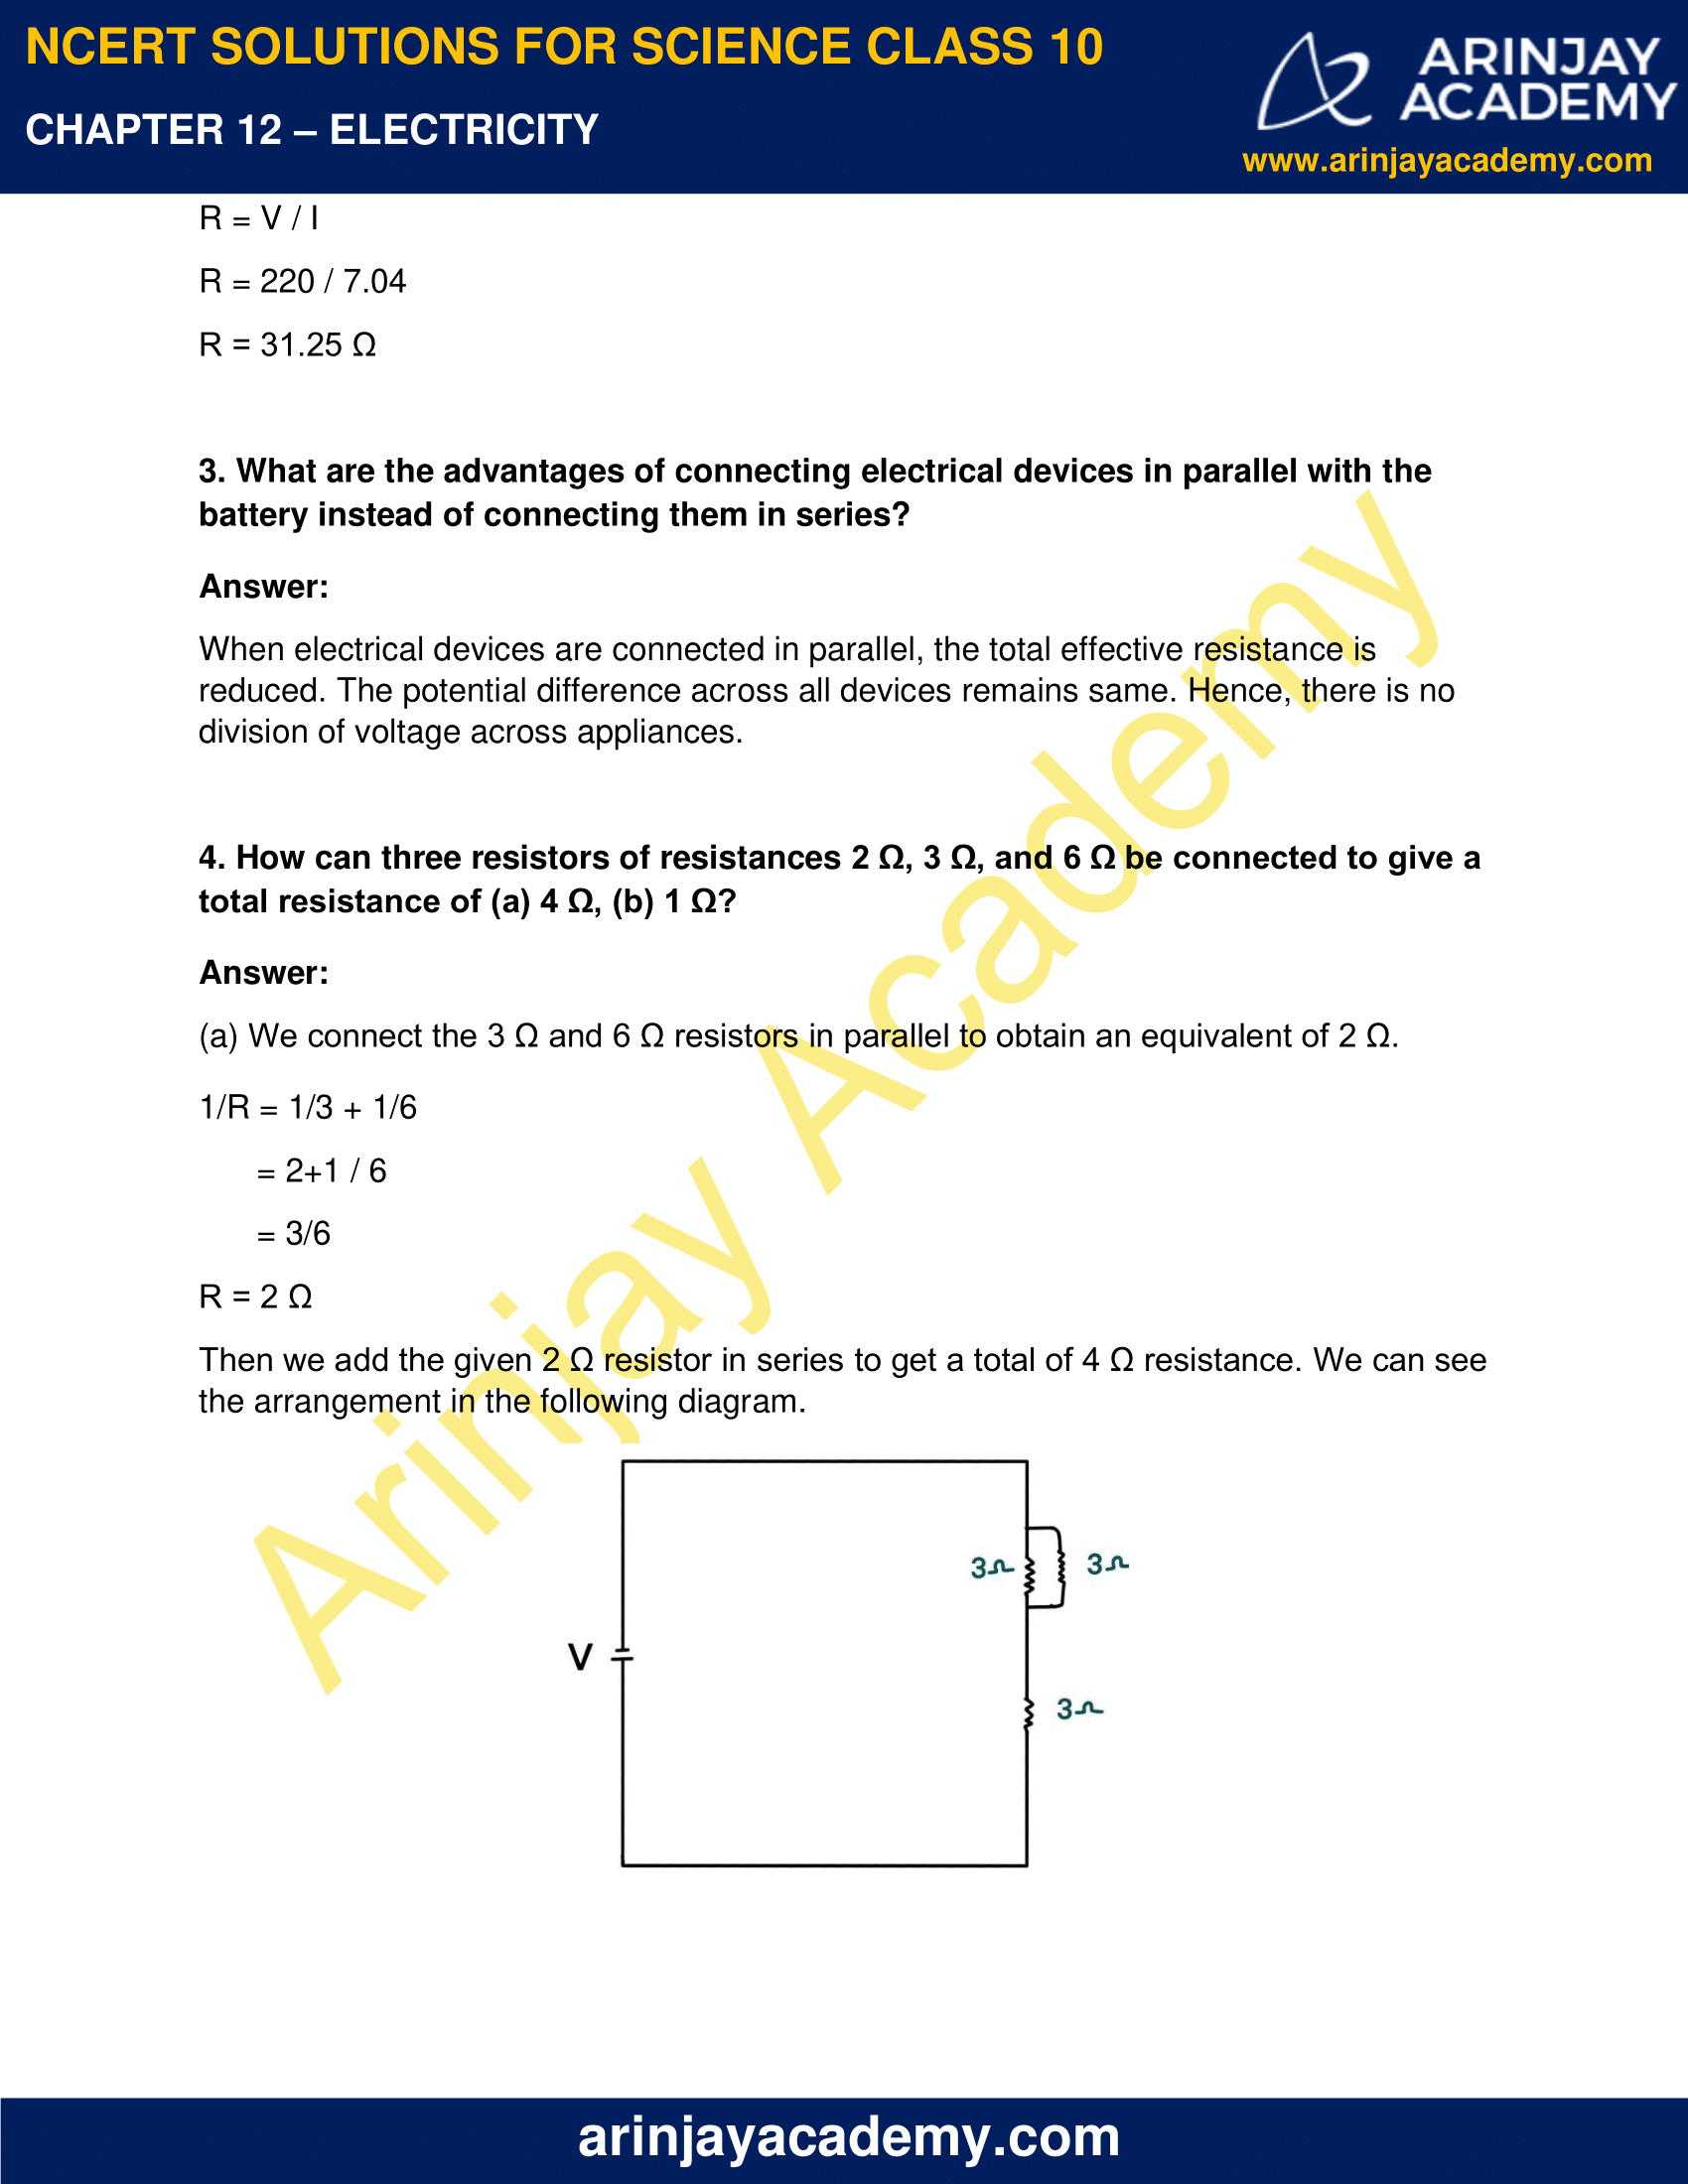 NCERT Solutions for Class 10 Science Chapter 12 Electricity image 9